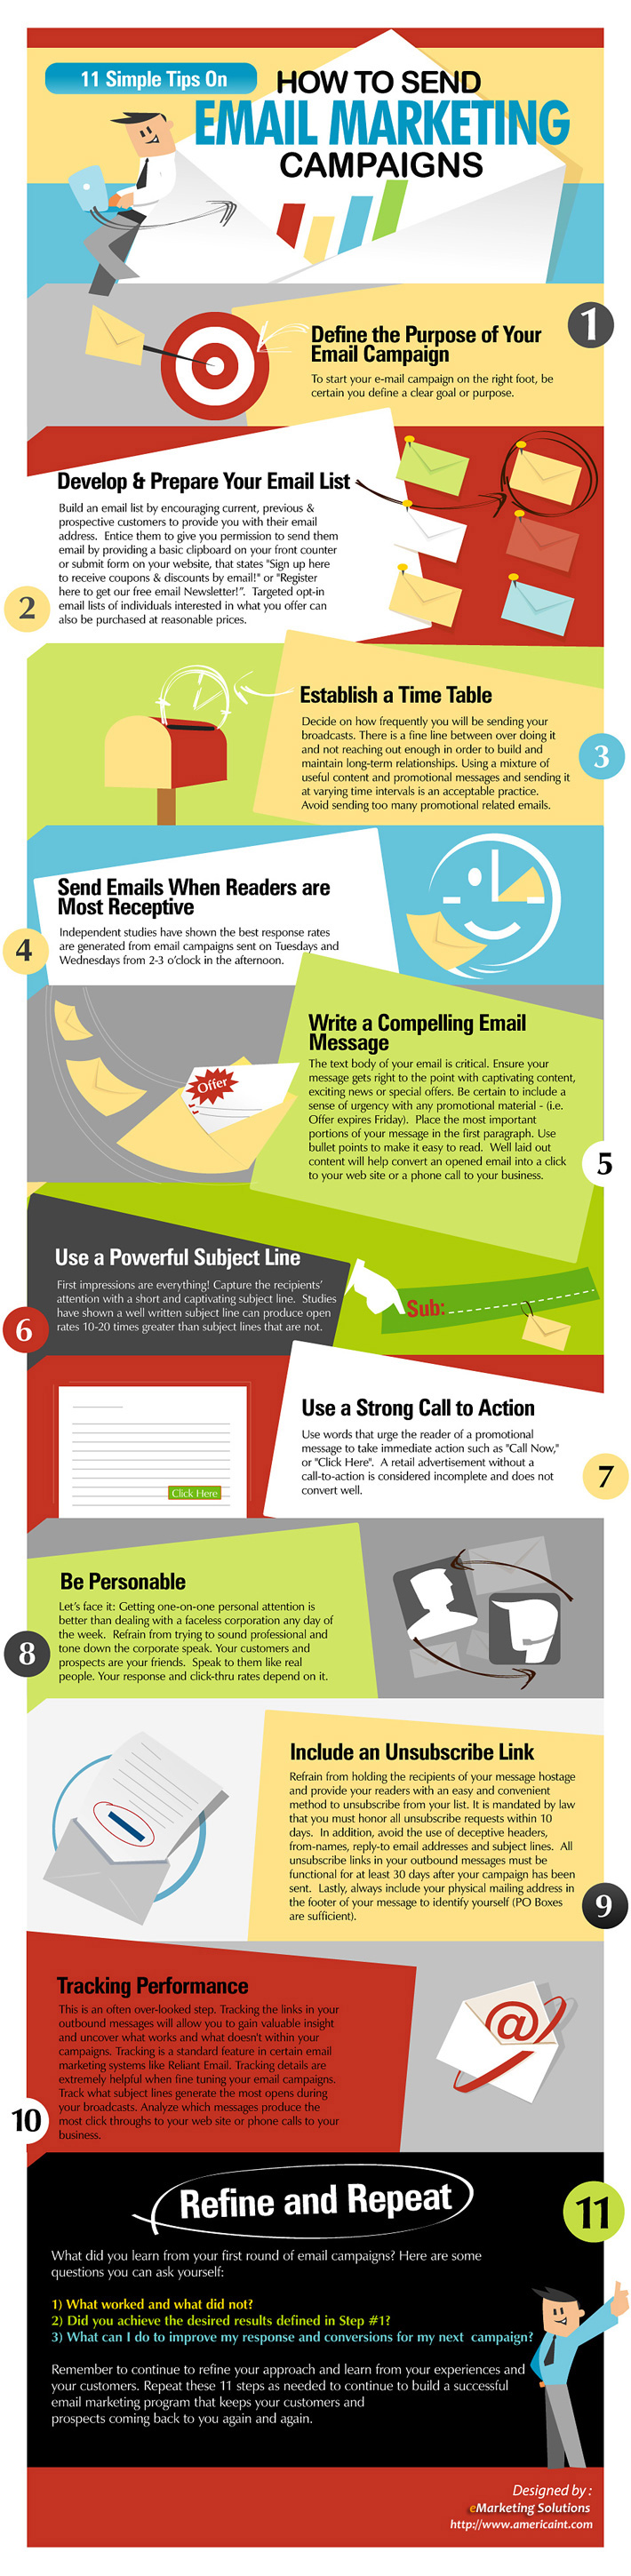 11 Simple Tips On Email Marketing Campaigns